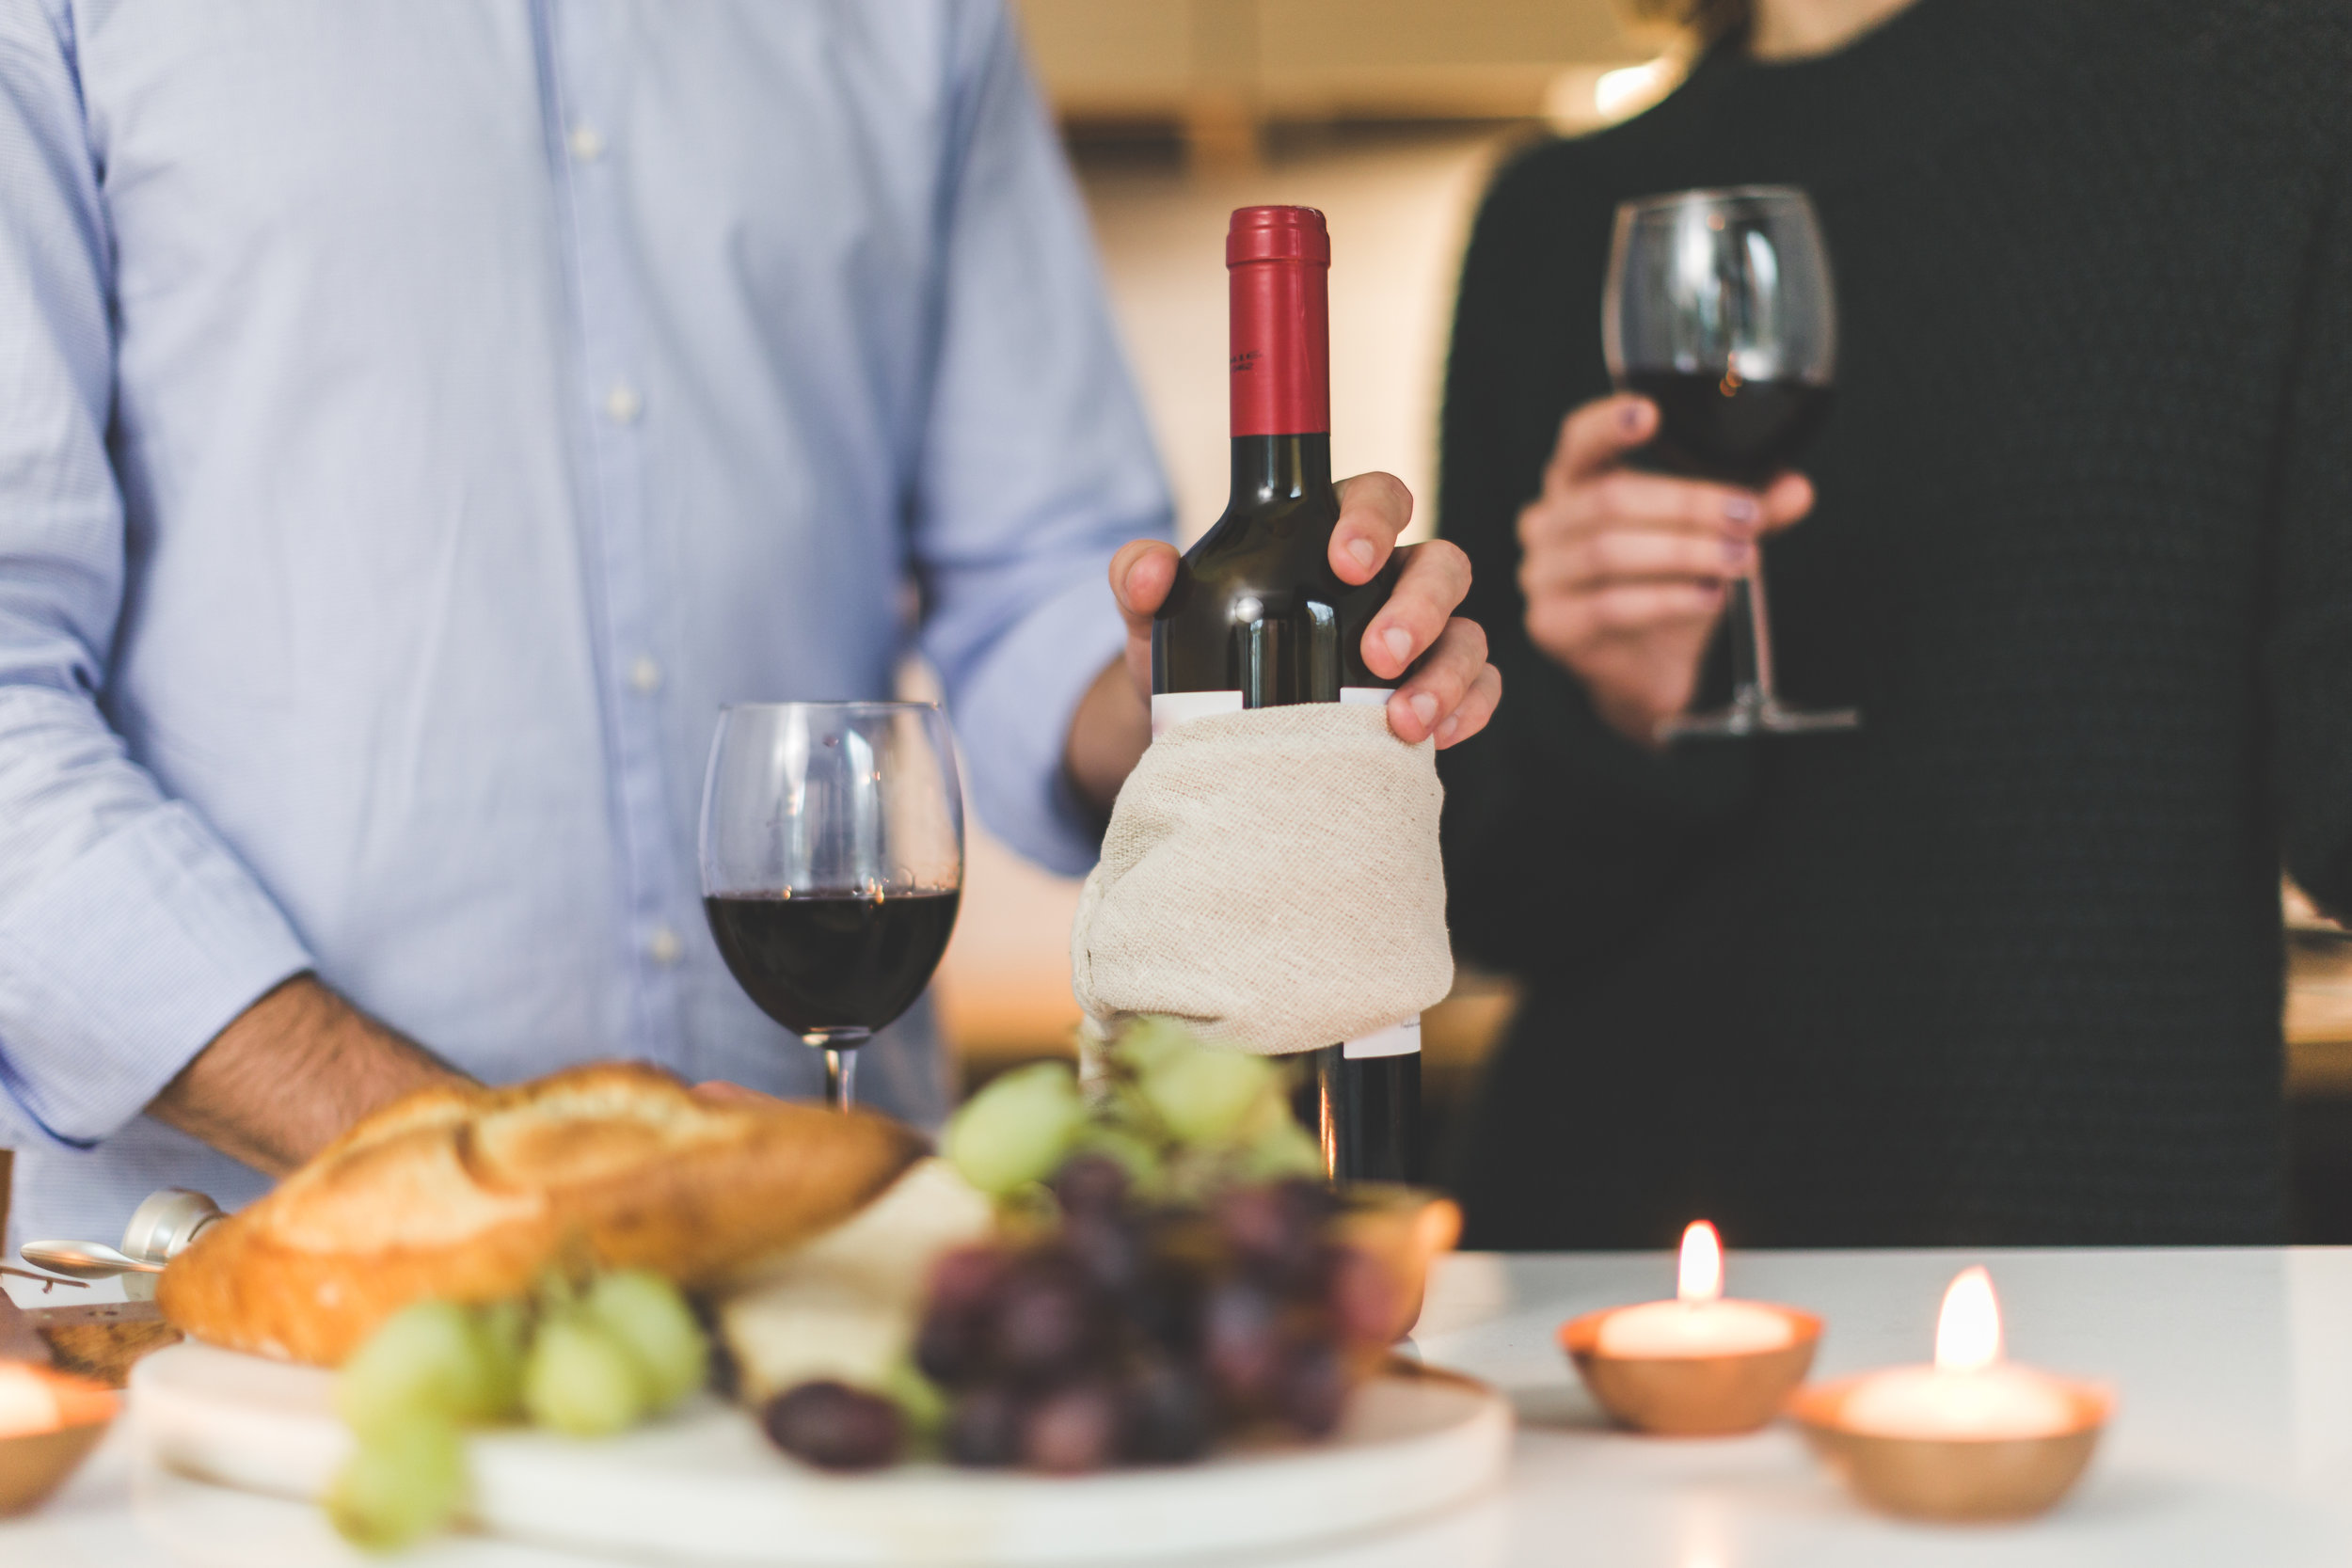 beer or wine tasting date night at home valentine's day